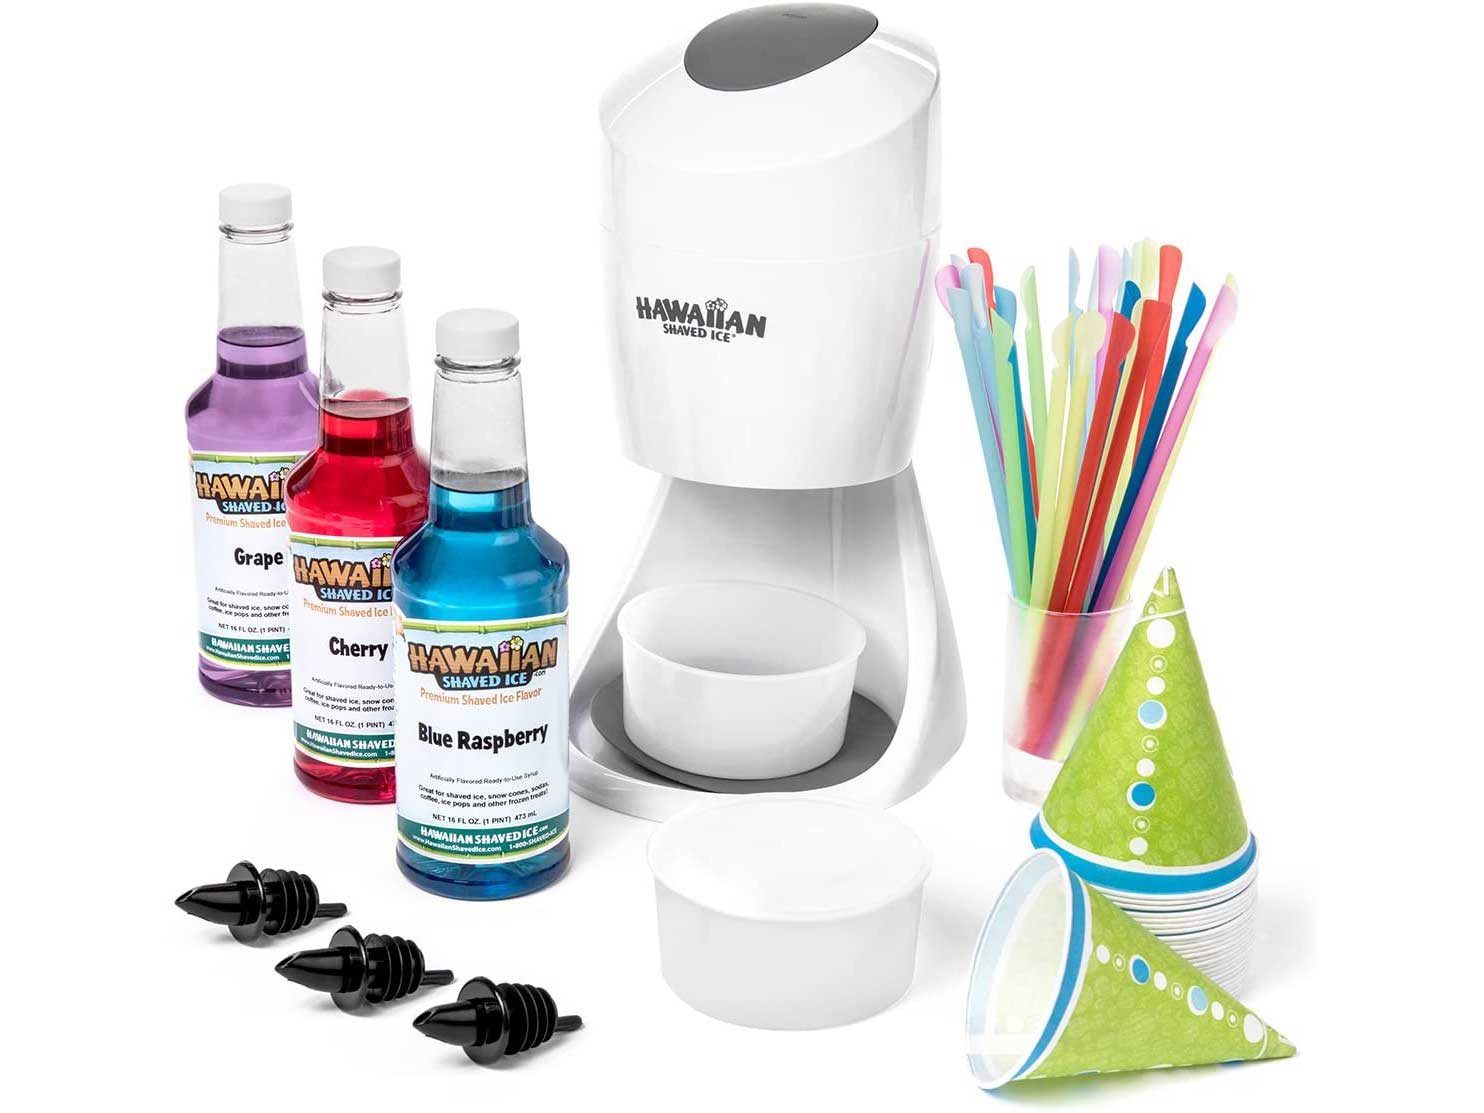 Hawaiian Shaved Ice S900A Shaved Ice and Snow Cone Machine with 3 Flavor Syrup Pack and Accessories